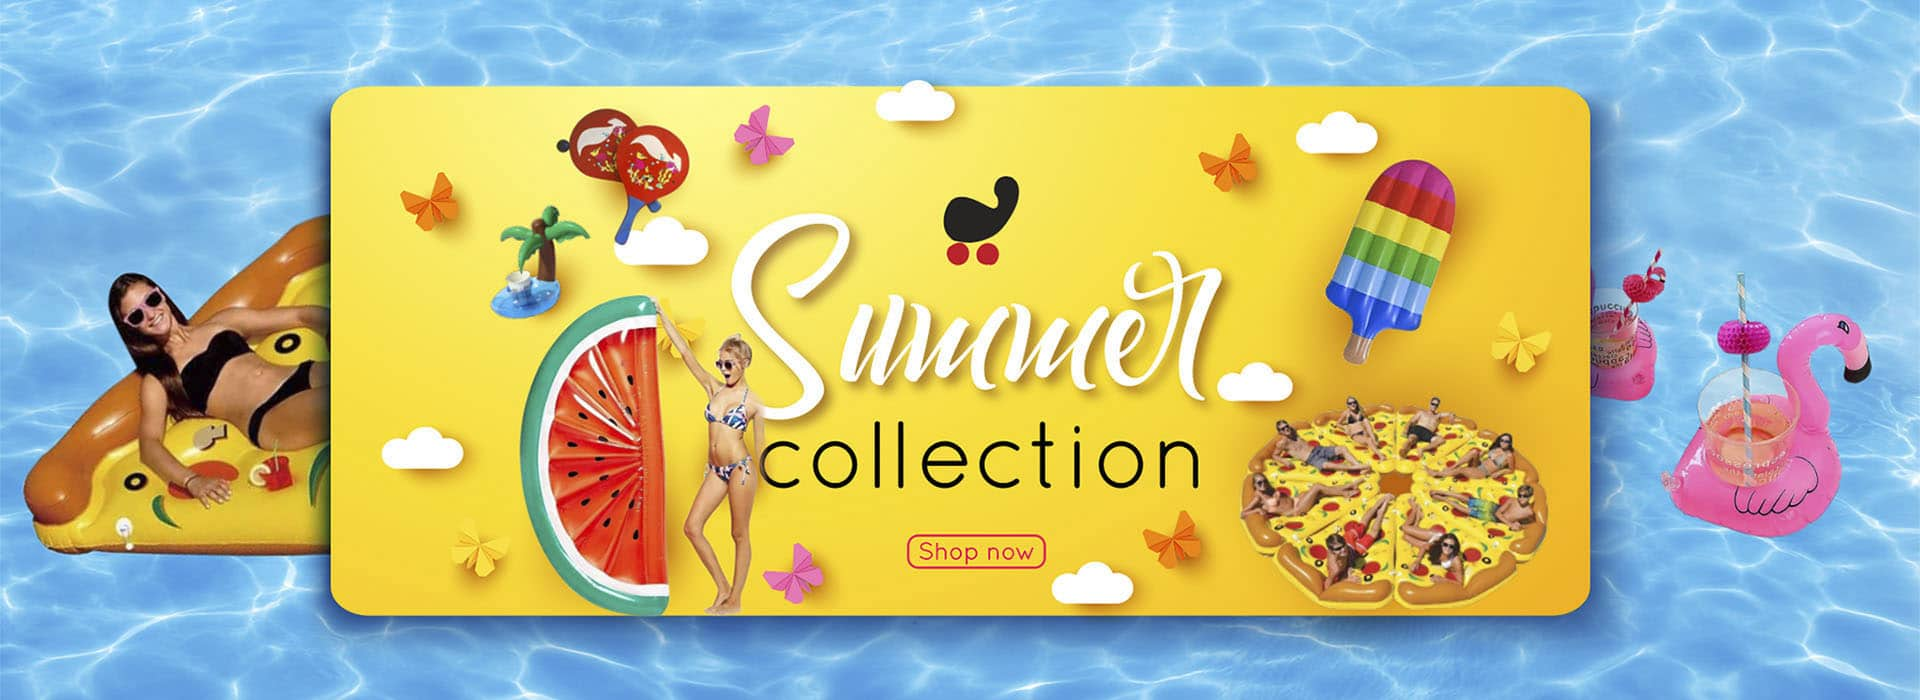 summer collection graphics design